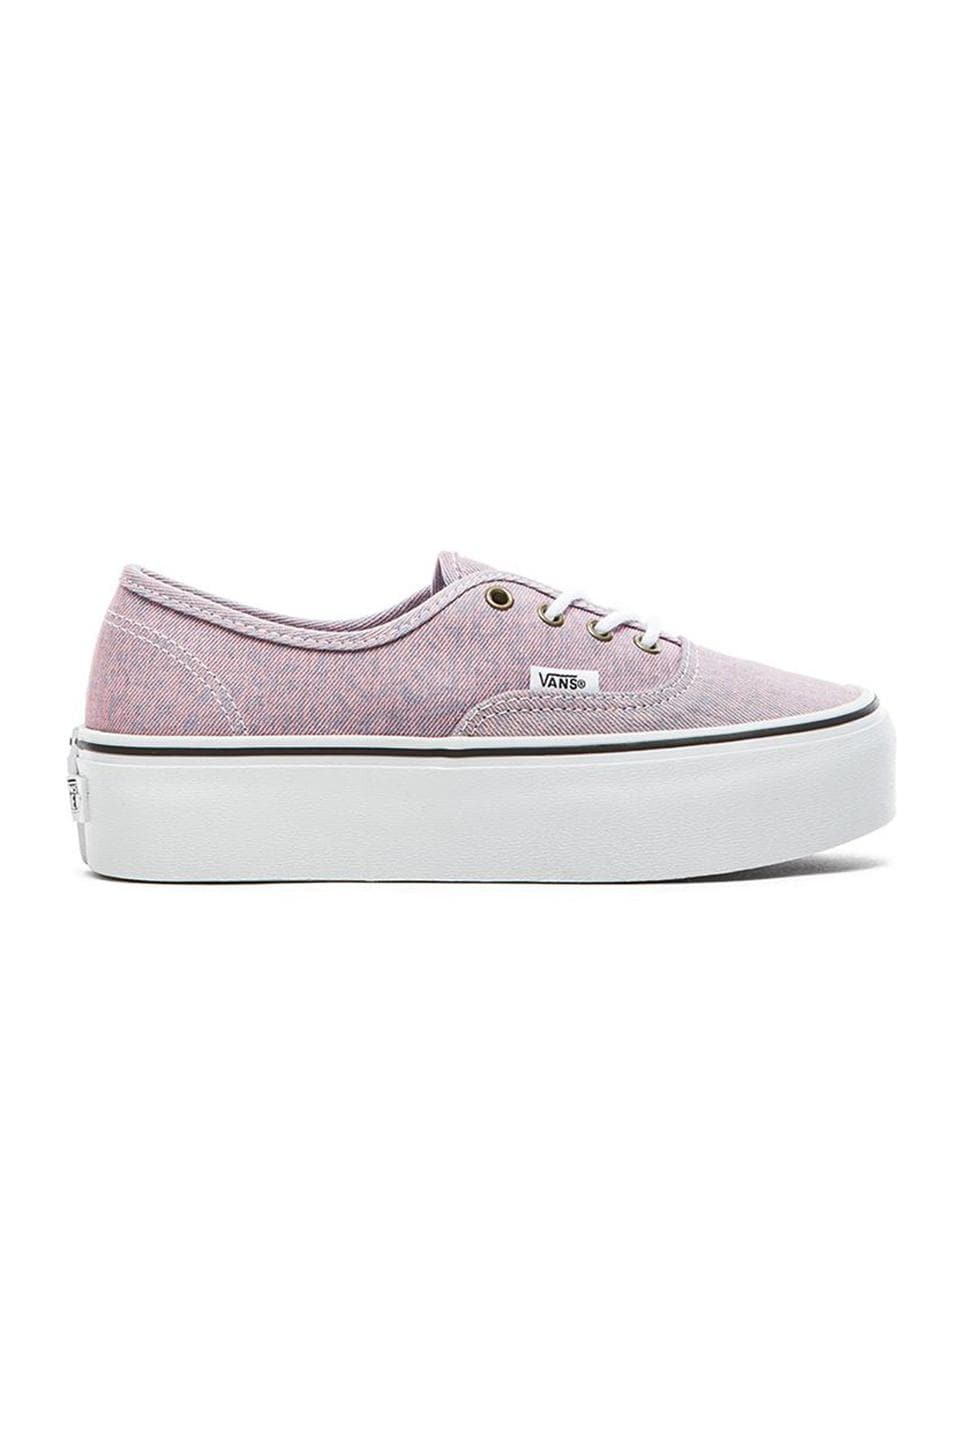 1b4de69a5d Vans Authentic Washed Denim Platform Sneaker in Pink